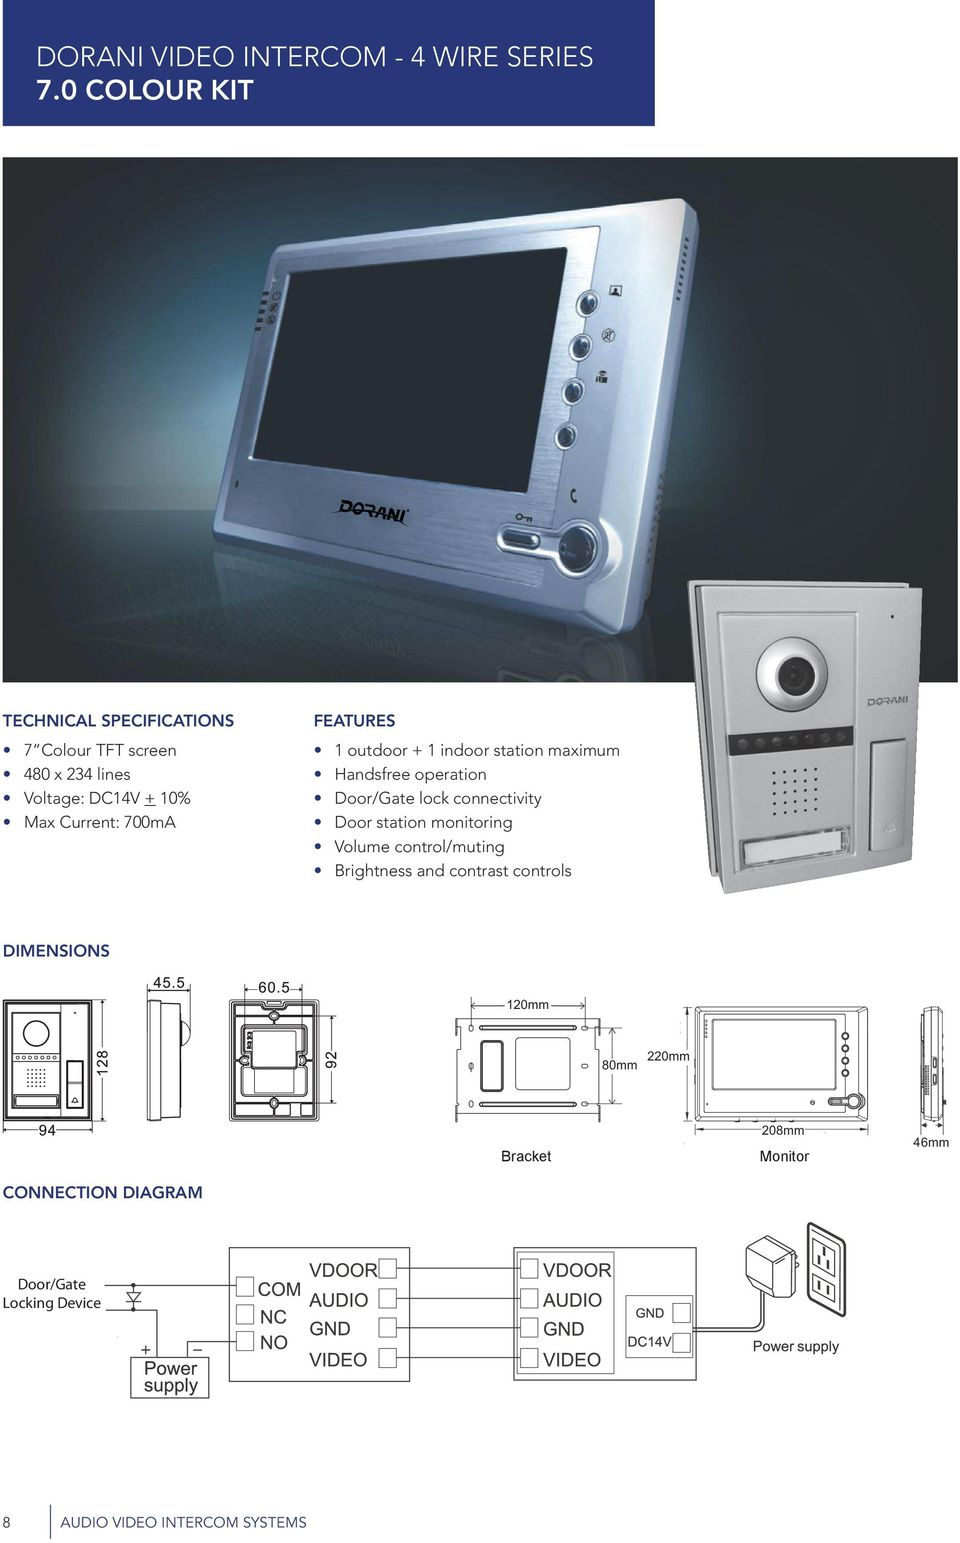 Audio Video Intercom Systems Security Safety At Your Finger Tips Fullduplex Pcb For Office And House Electronic Design 700ma Features 1 Outdoor Indoor Station Maximum Handsfree Operation Door Gate Lock Connectivity